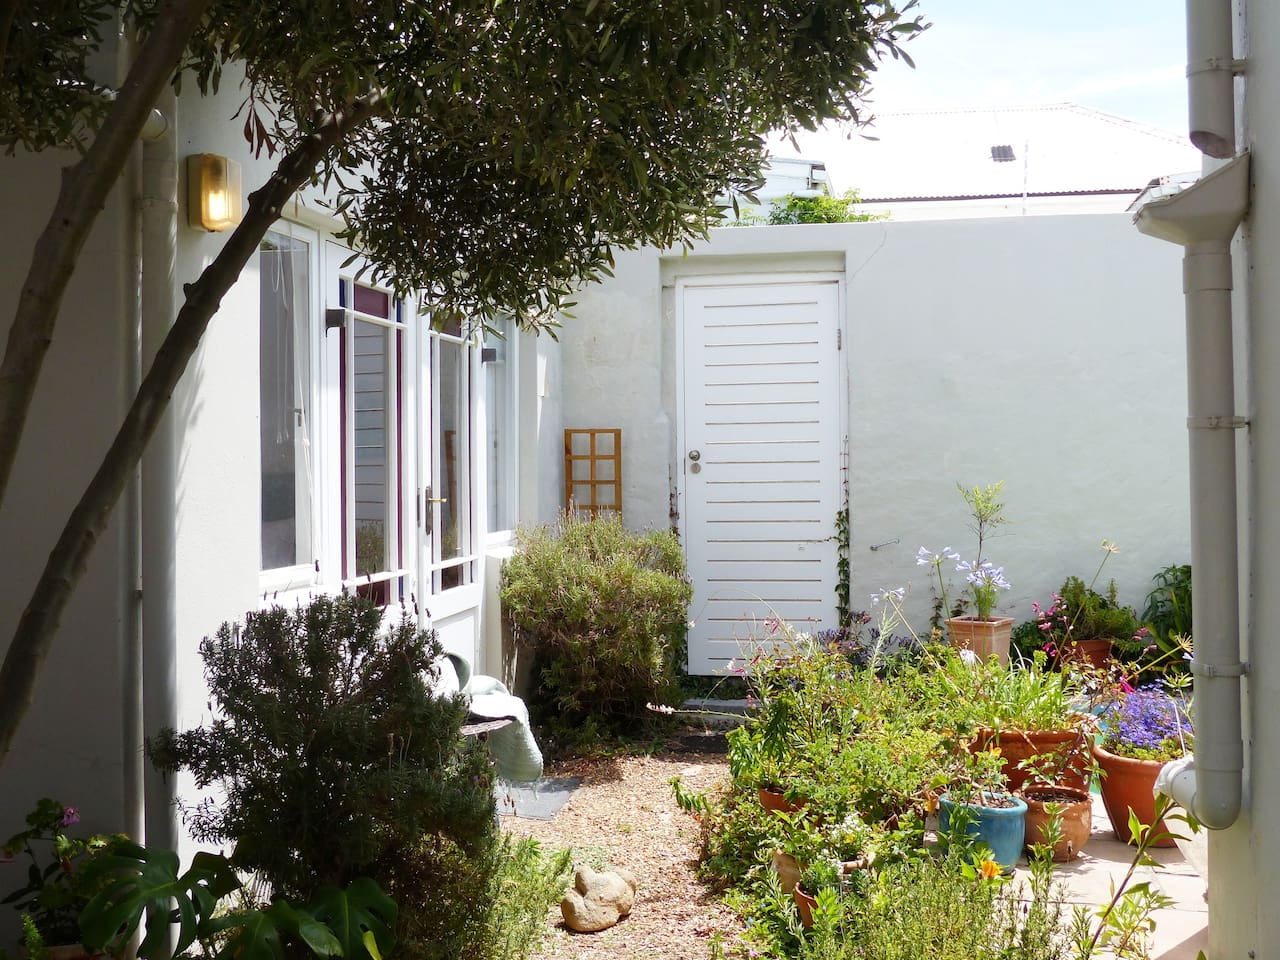 Sunny garden room with separate entrance